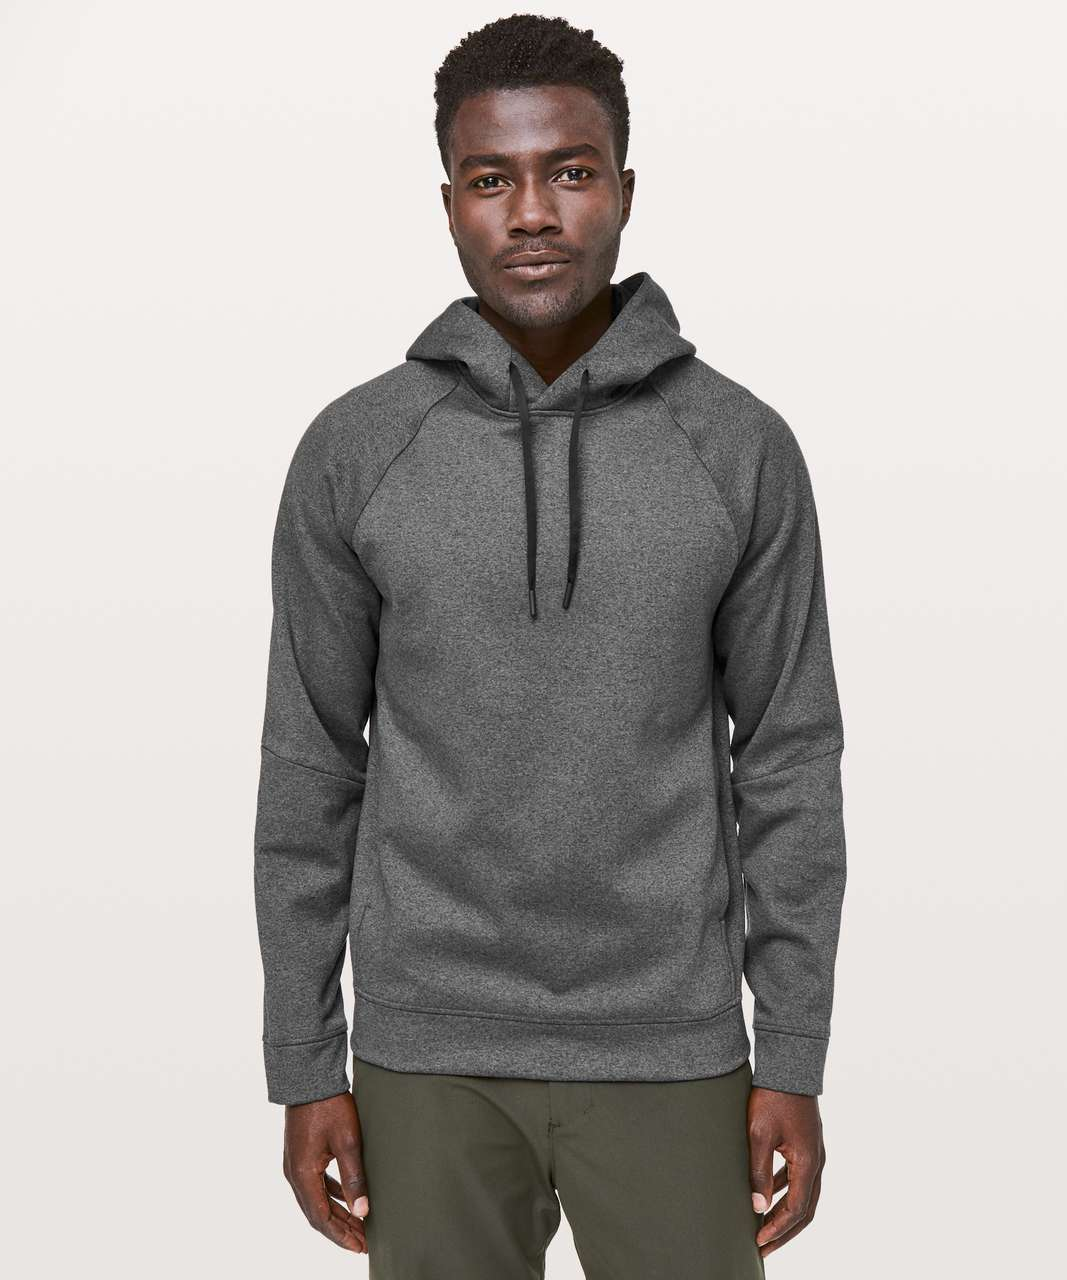 Lululemon City Sweat Pullover Hoodie *Thermo - Heathered Coal